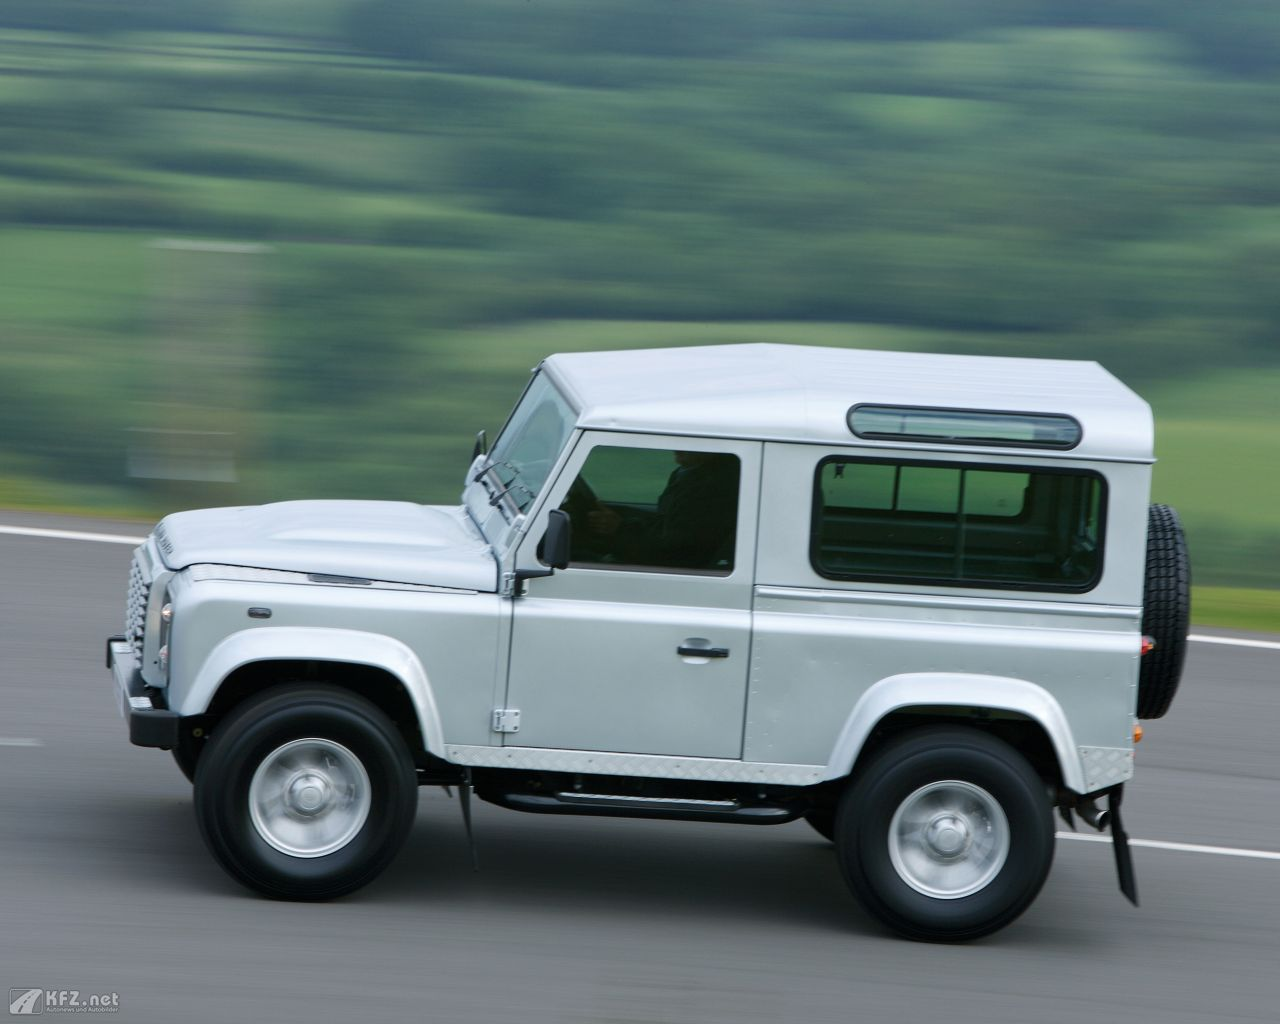 land-rover-defender-1280x1024-9